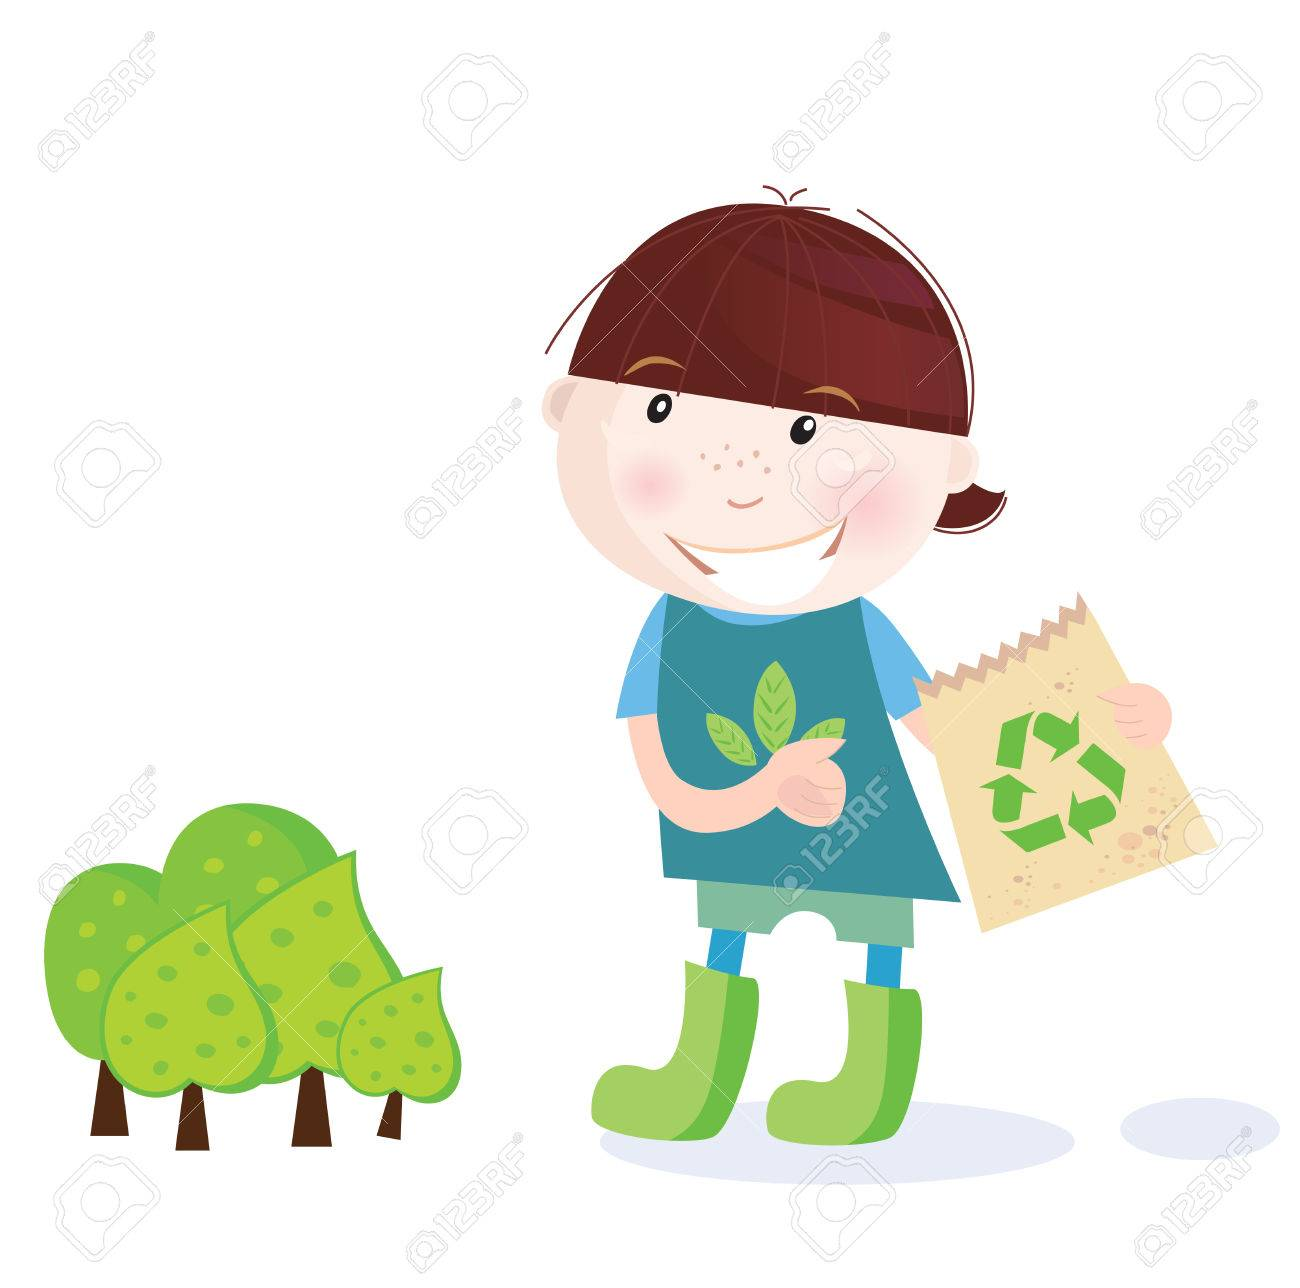 School boy is recycling. Recycling is perfect way to save forest! Vector Illustration of school boy. Stock Vector - 6563003